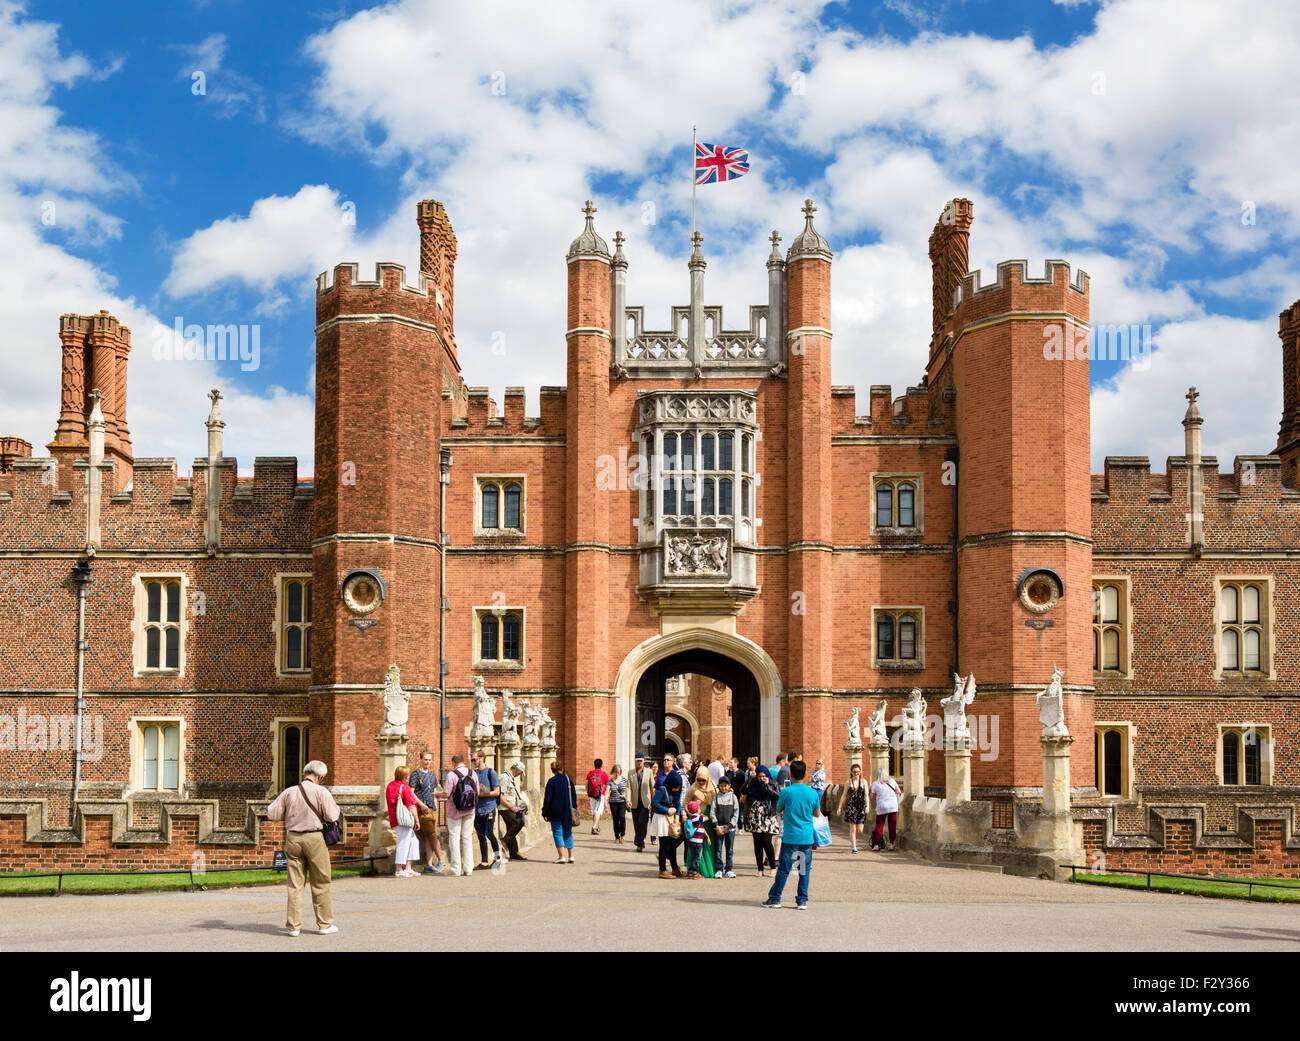 Hampton Court Palace. The West Front and Main Entrance to Hampton Court Palace, Richmond upon Thames, London, England, Stock Photo